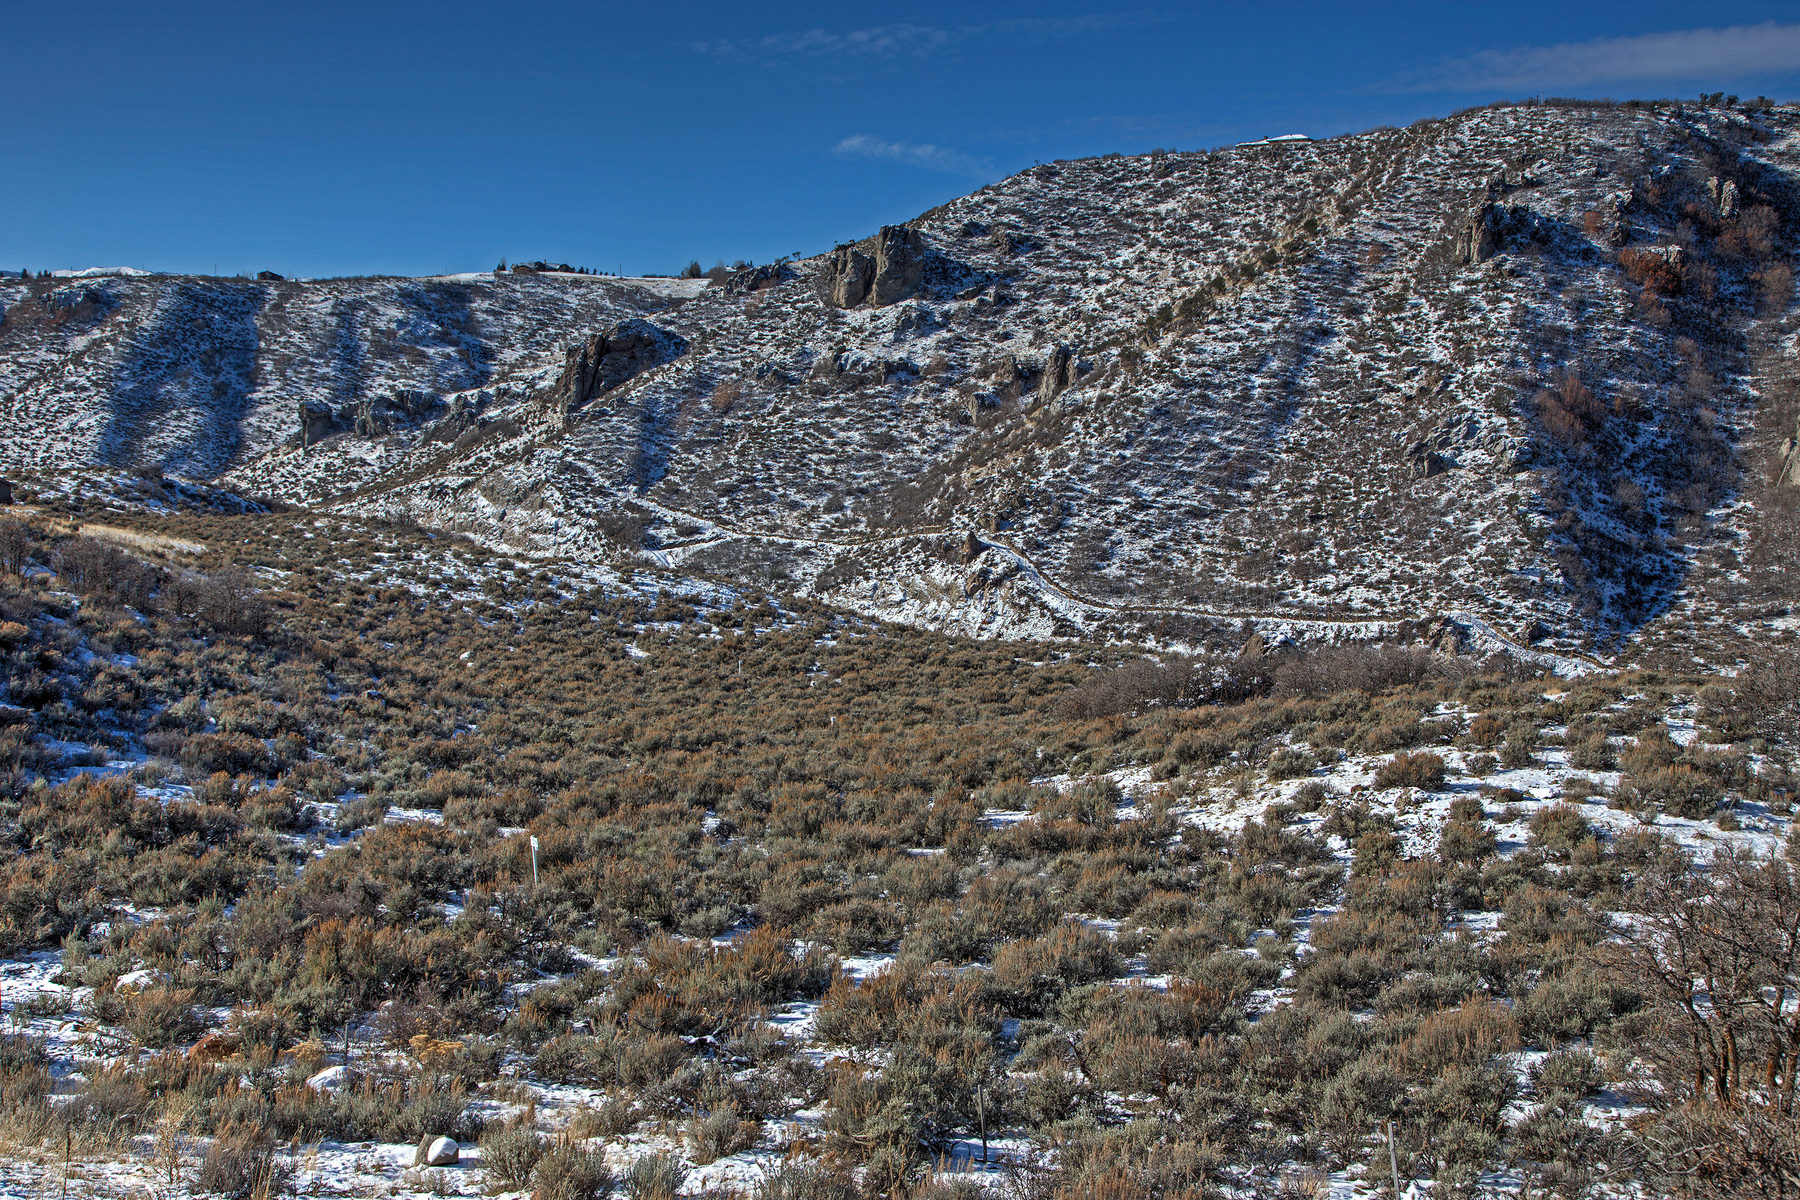 Terreno para Venda às Northgate Canyon Homesite Boasts Vistas of Natural Rock Outcroppings 9165 Spotted Owl Ct Lot#29 Park City, Utah, 84098 Estados Unidos